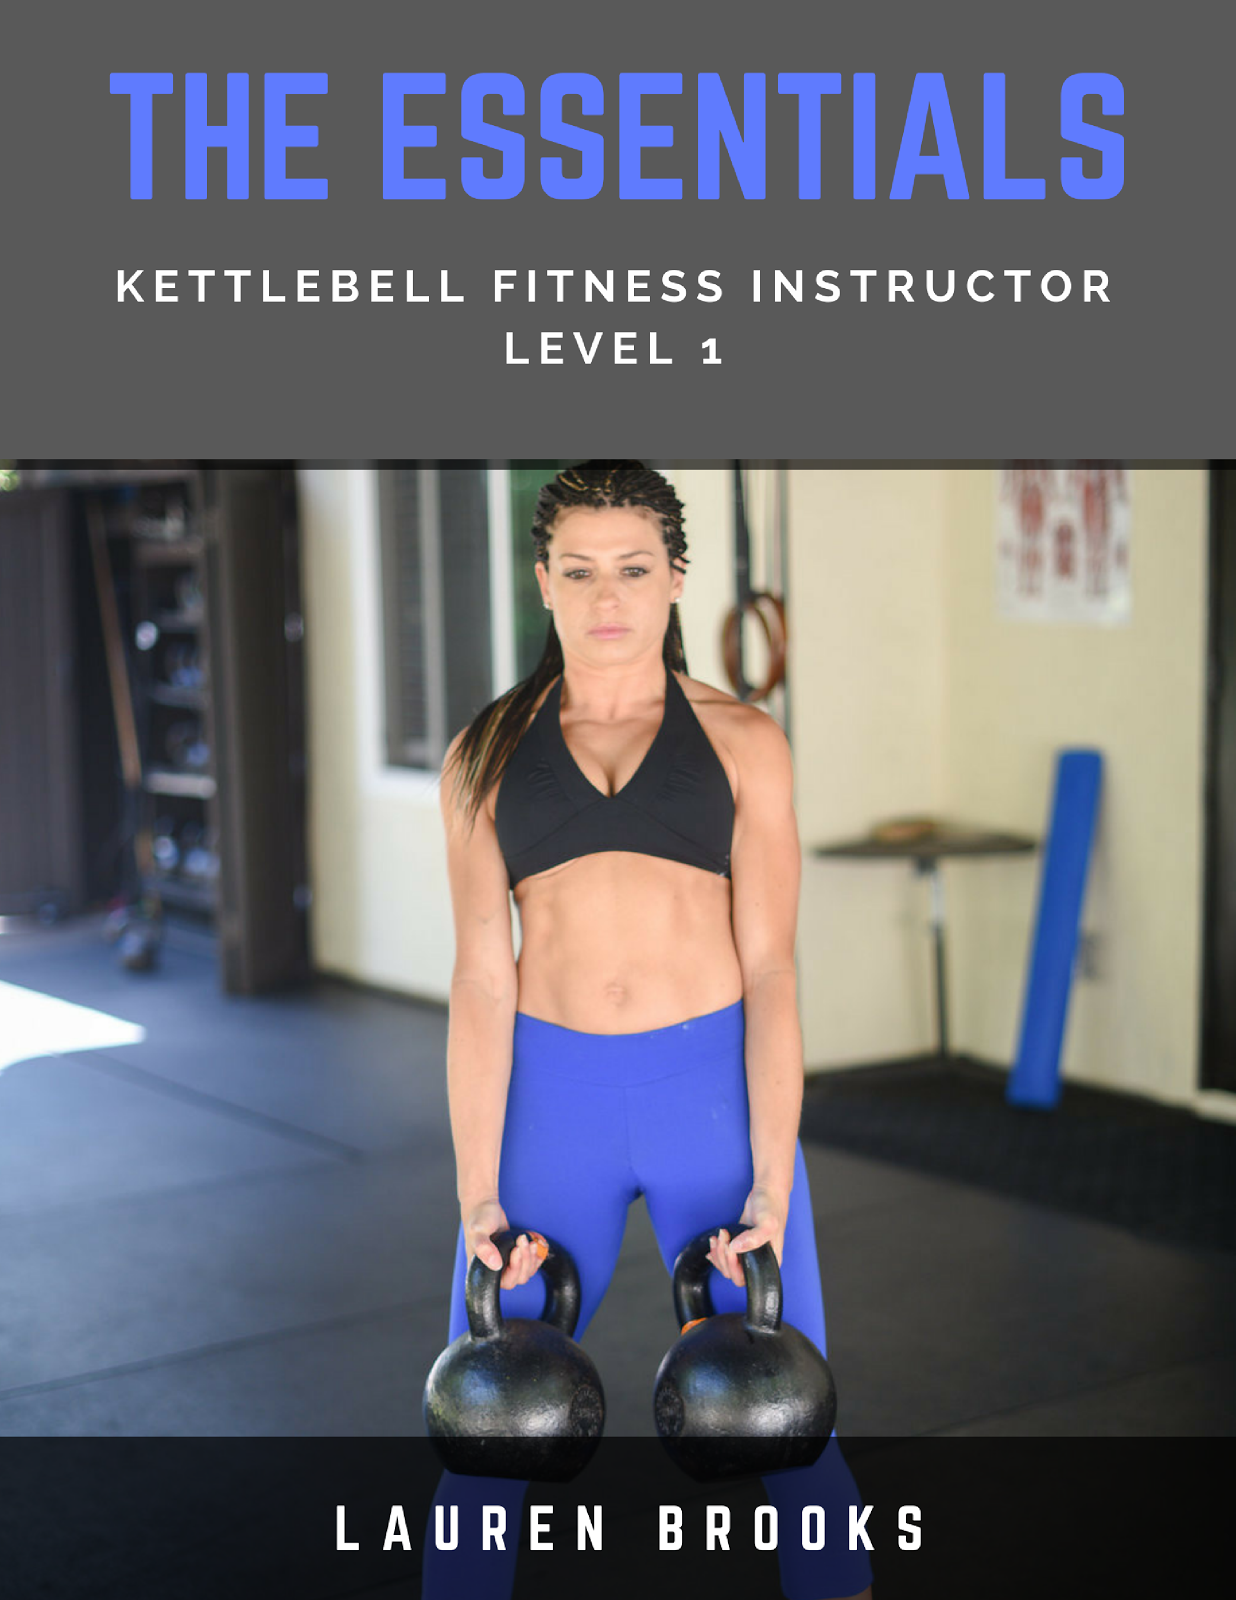 Essentials Kettlebell Workshop coming to you - Learn more - click on image